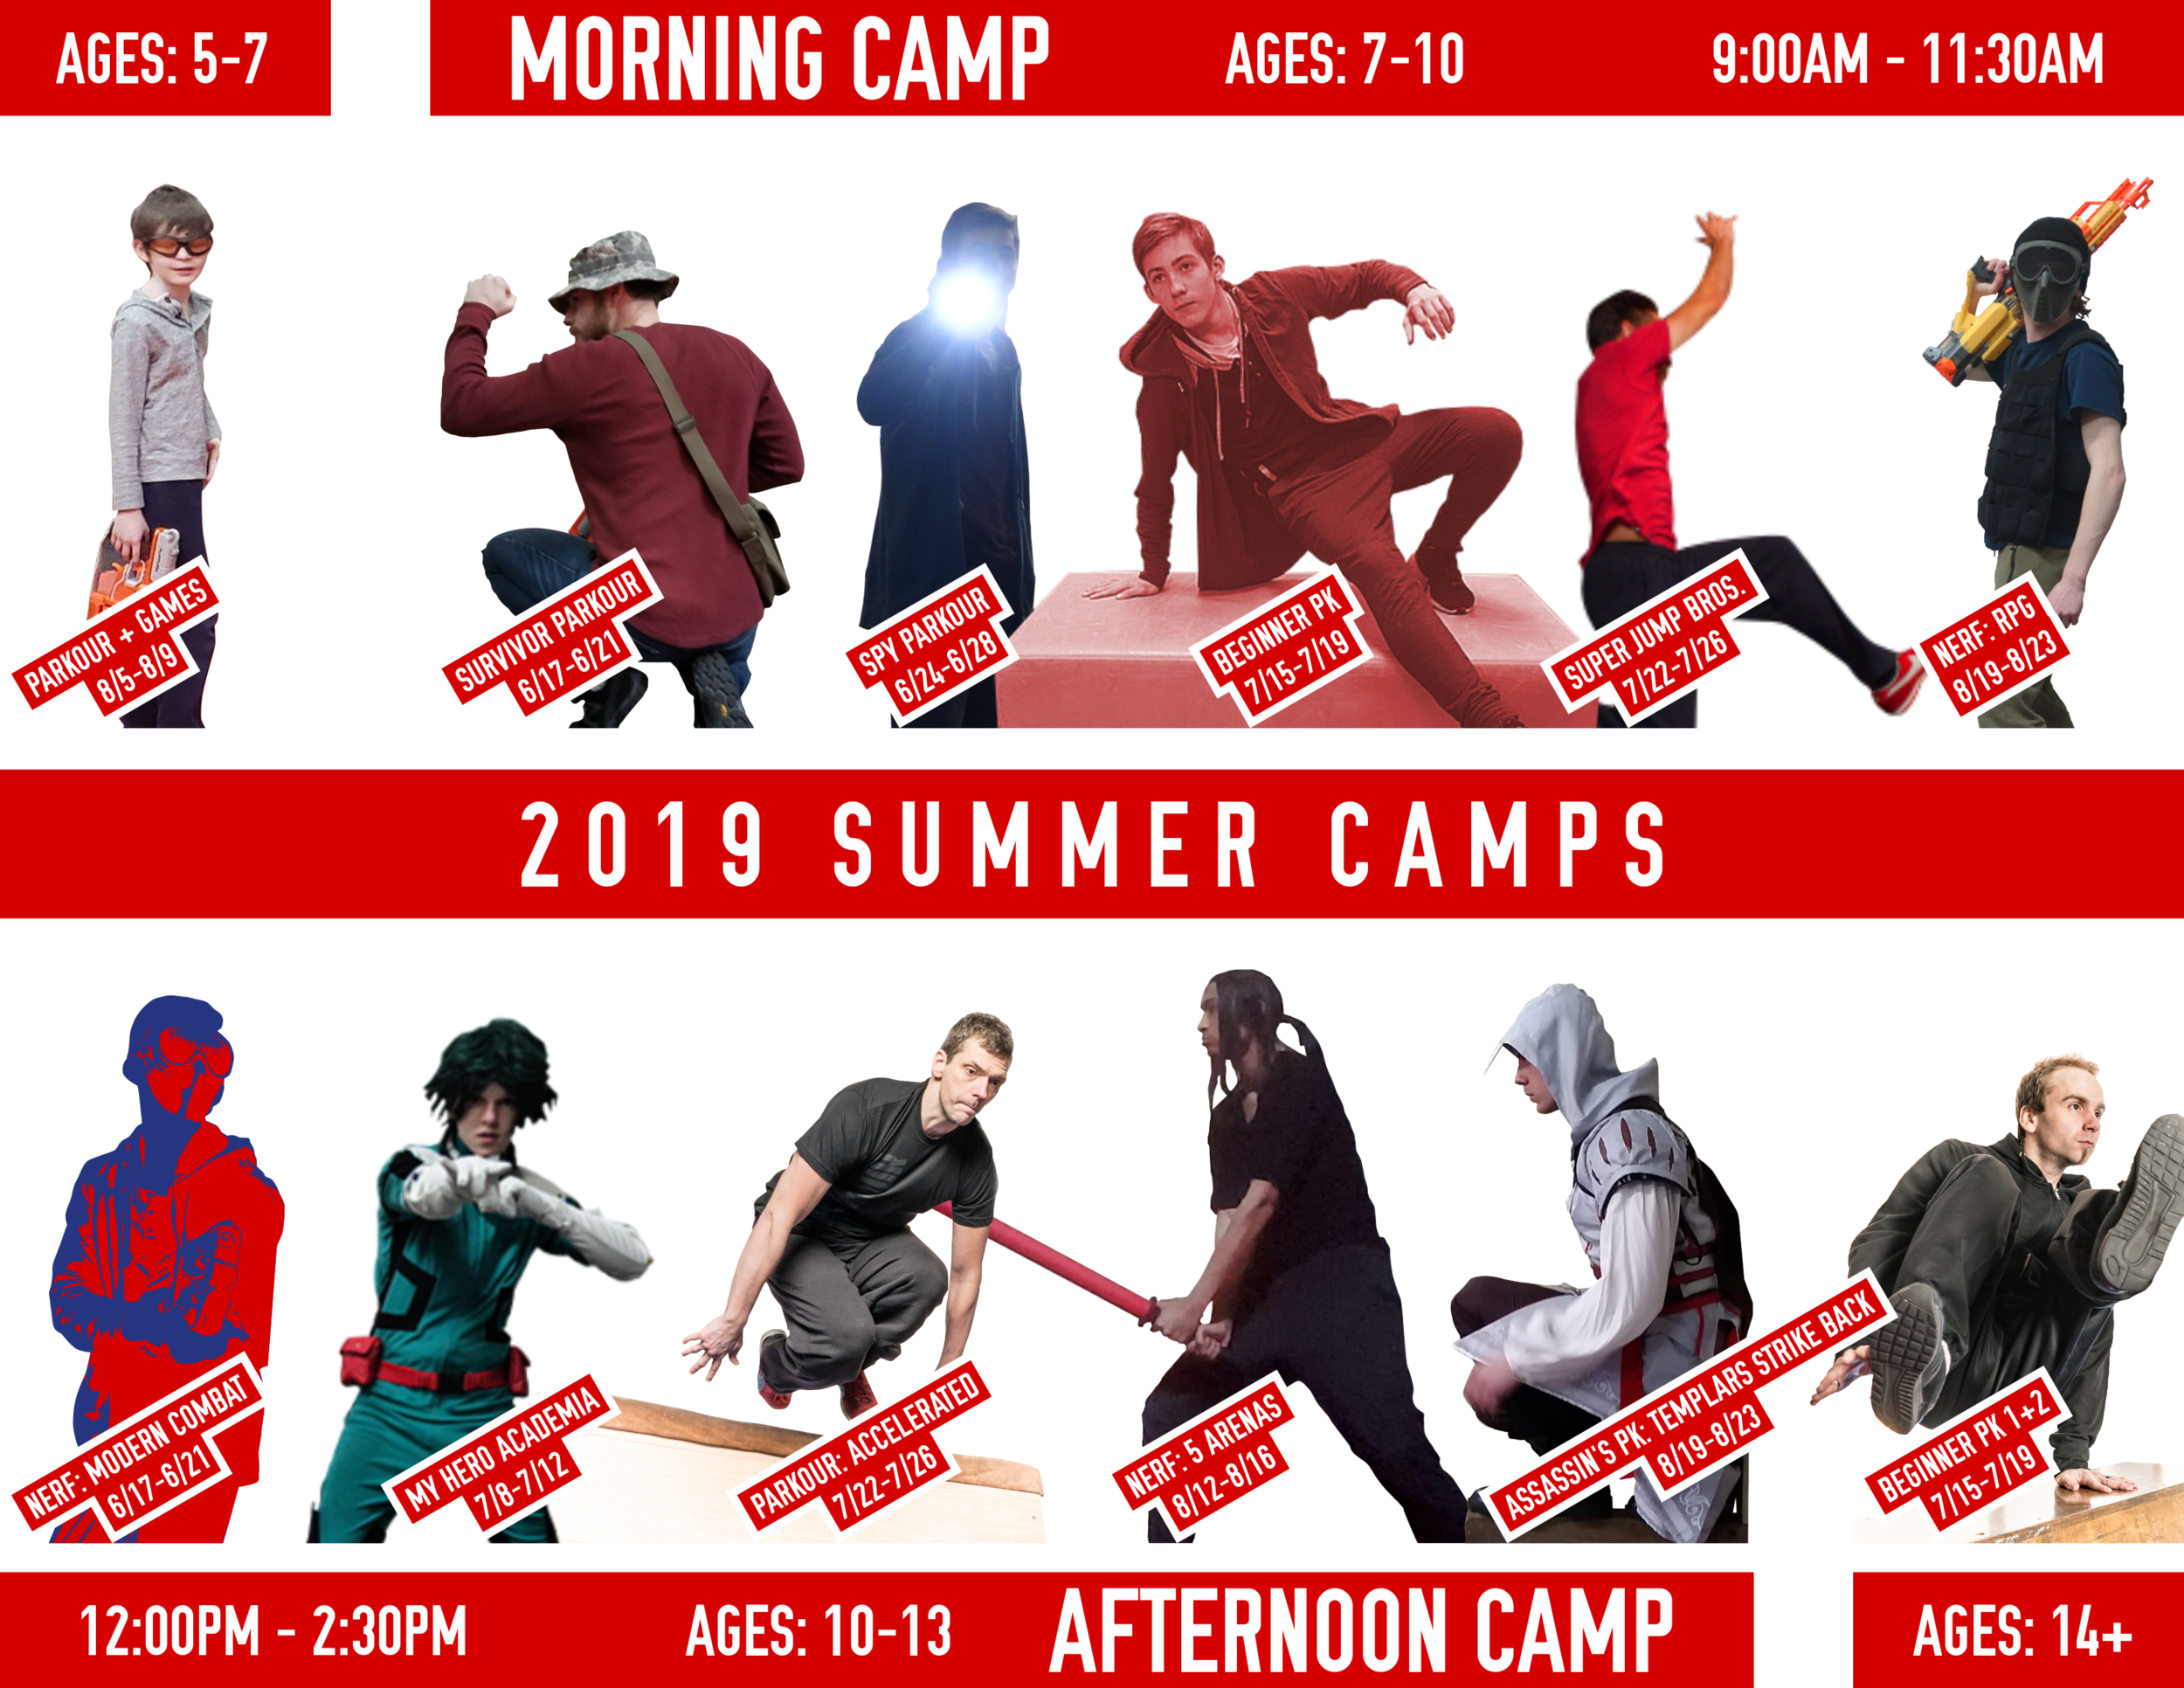 All Summer Camps V1.2 (1).png